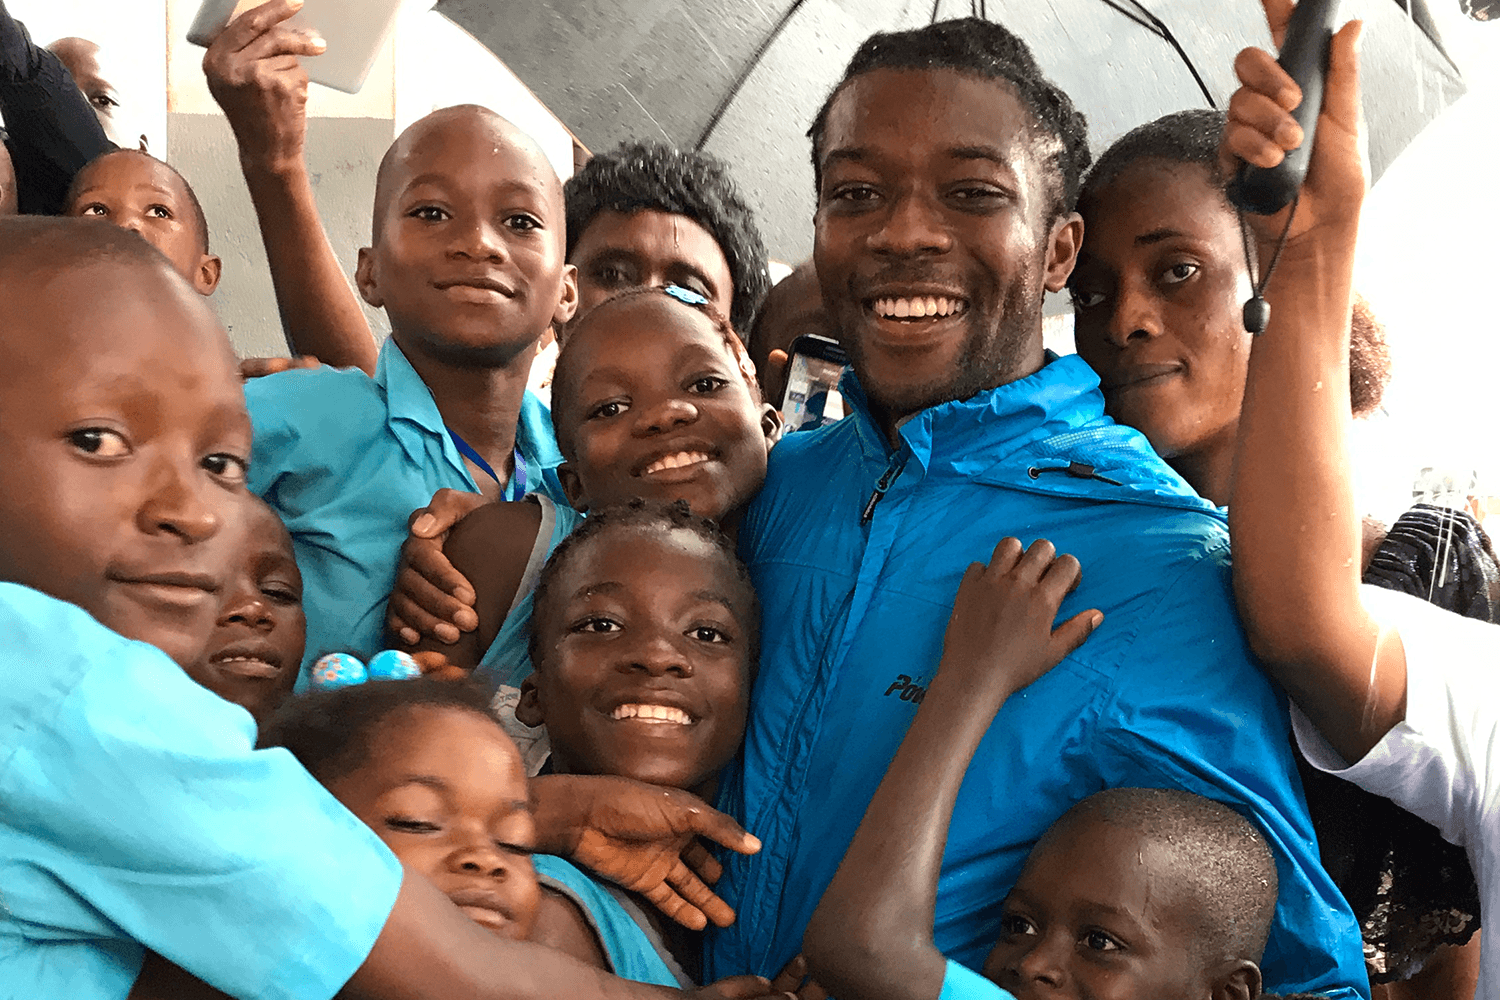 Soccer Player Mike Lahoud Hopes to Empower Sierra Leone's Children Through STEM Education